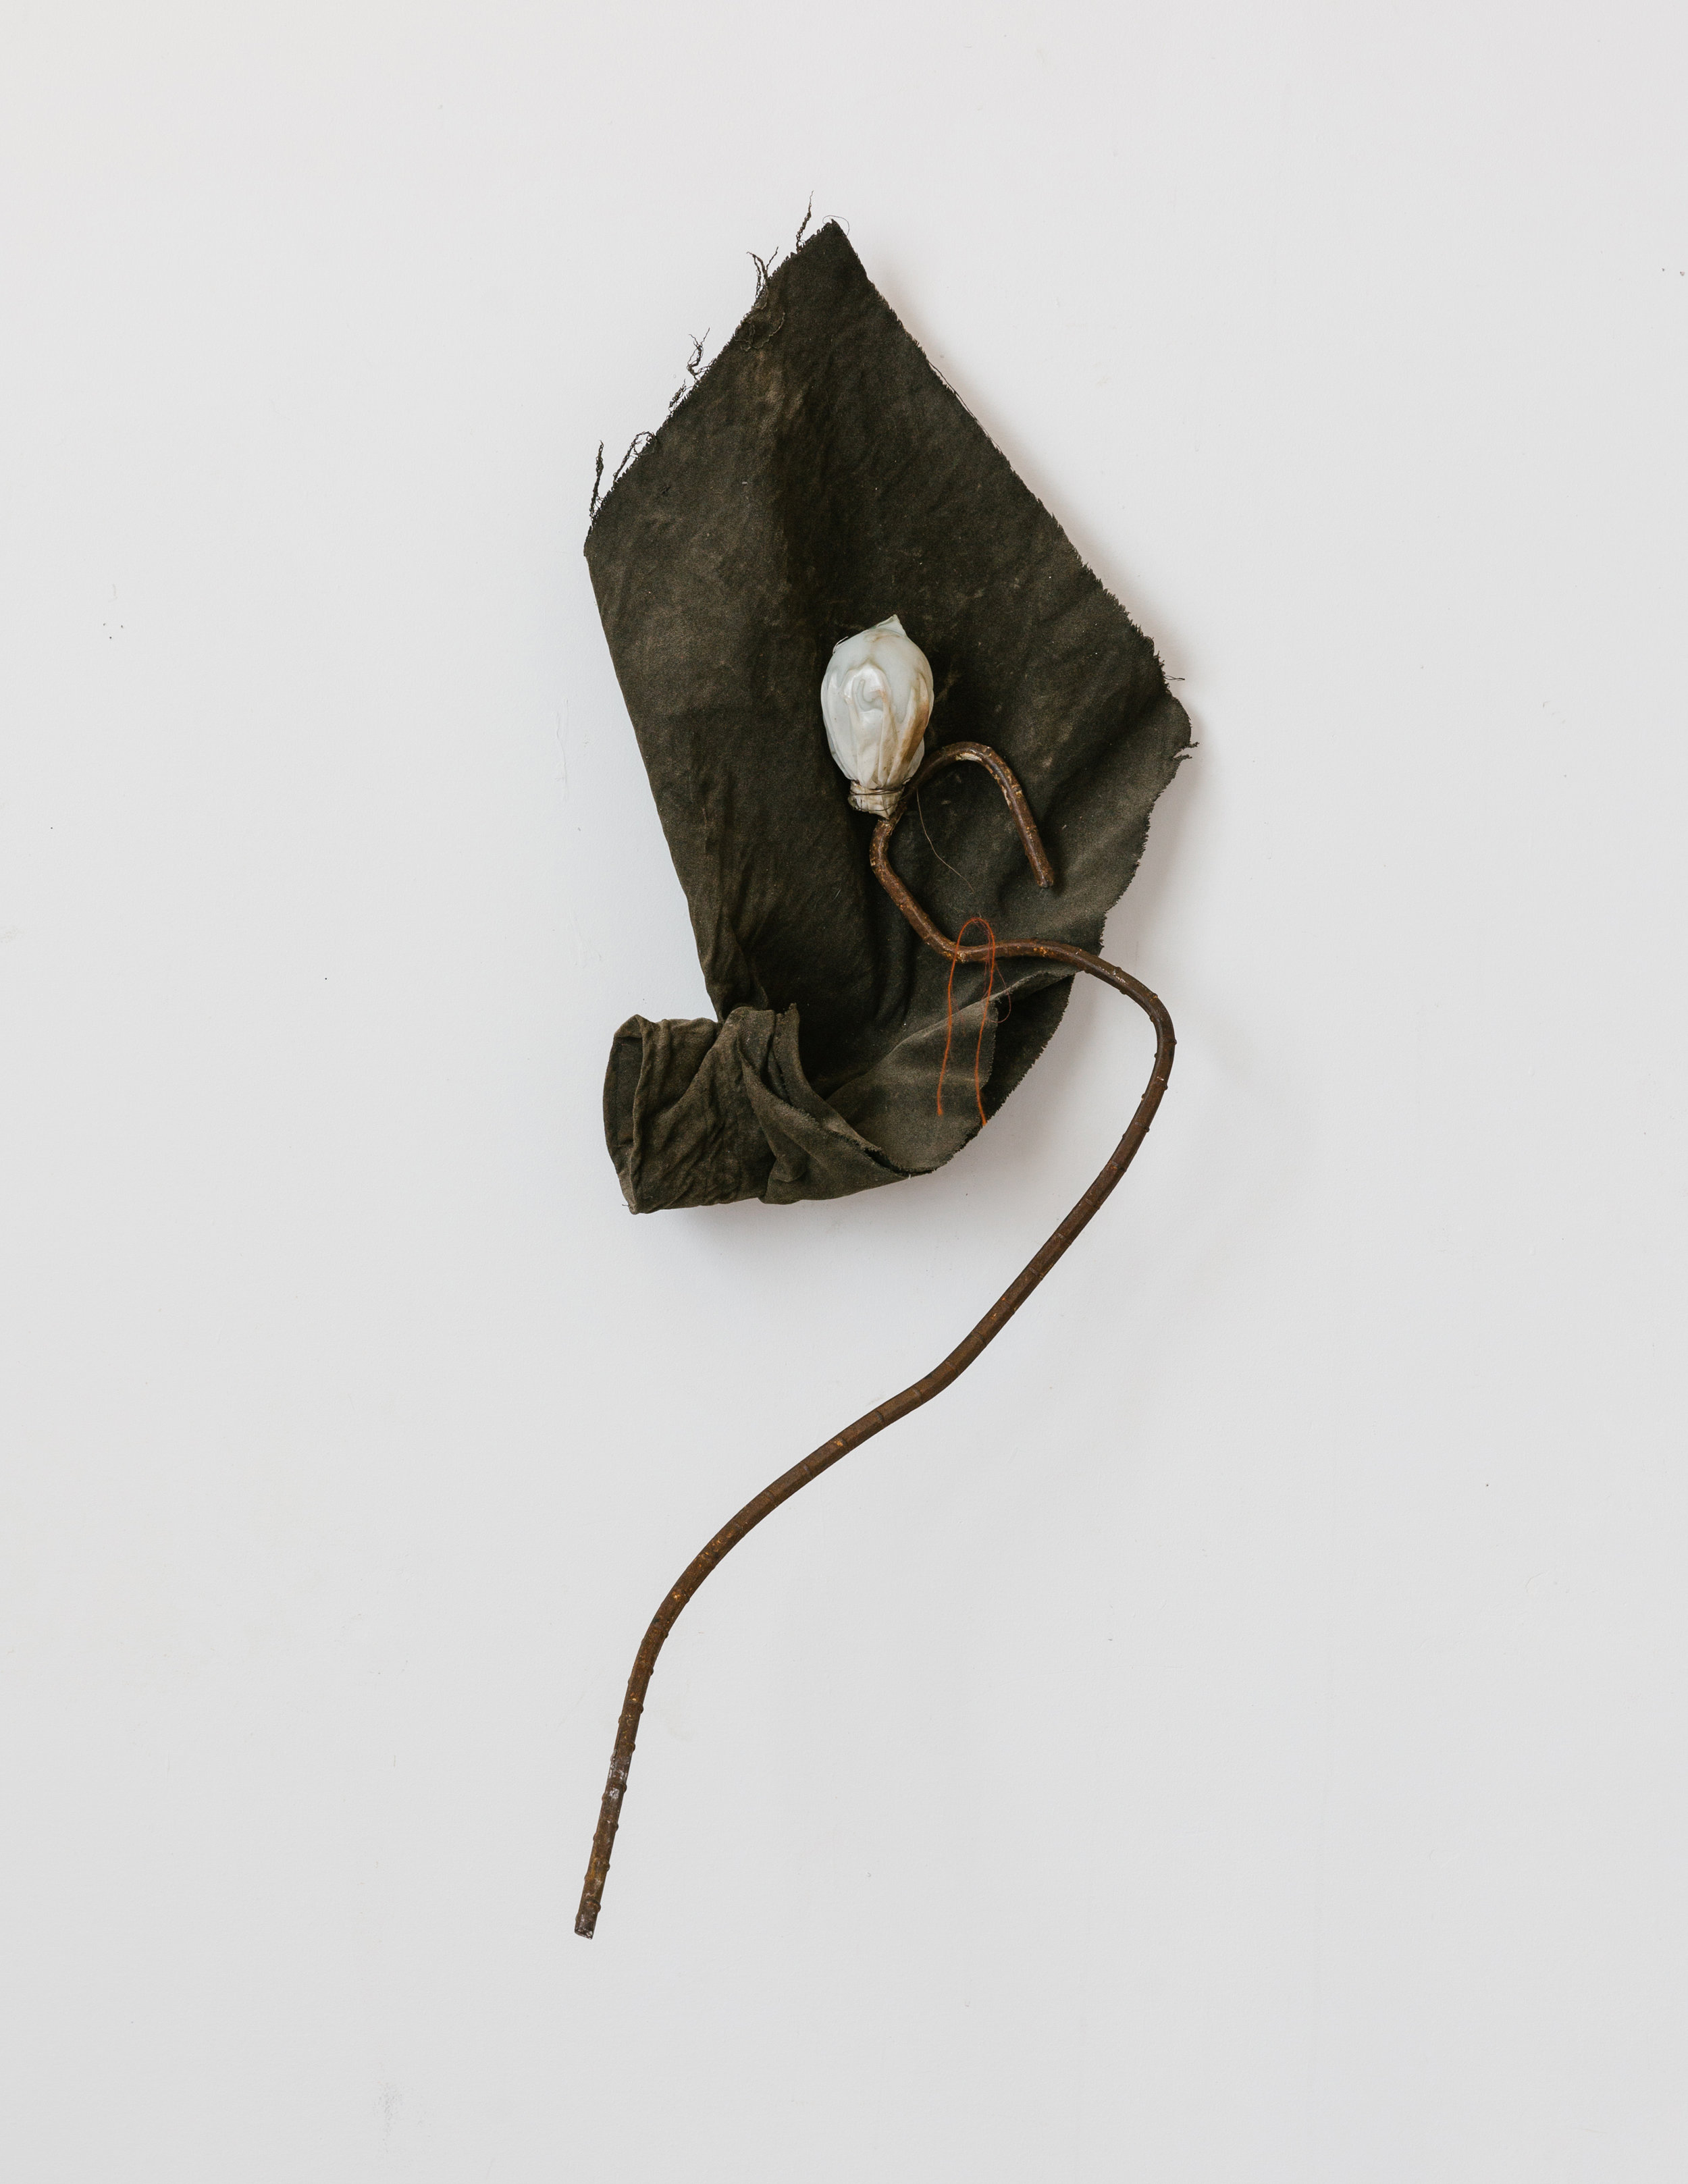 Caddis | Steel, lightbulb, fabric, wire, polyurethane, string, 2017